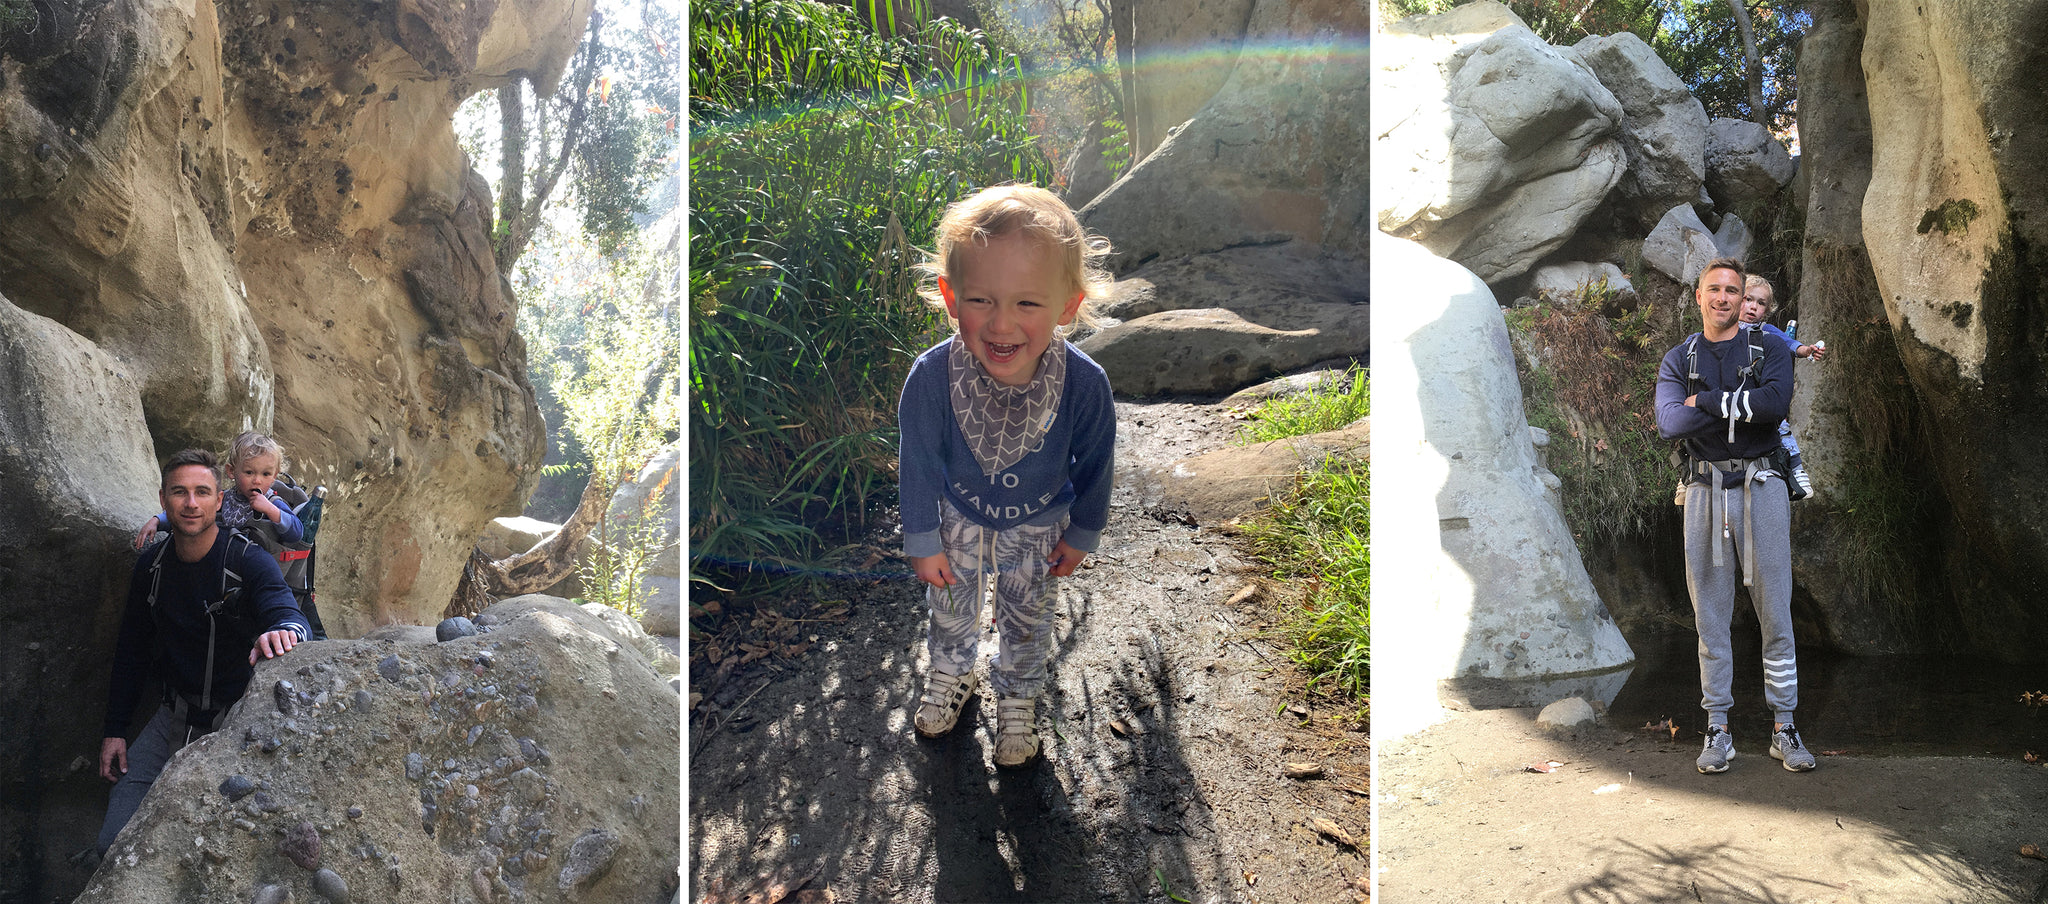 TOPANGA NATIONAL PARK HIKE